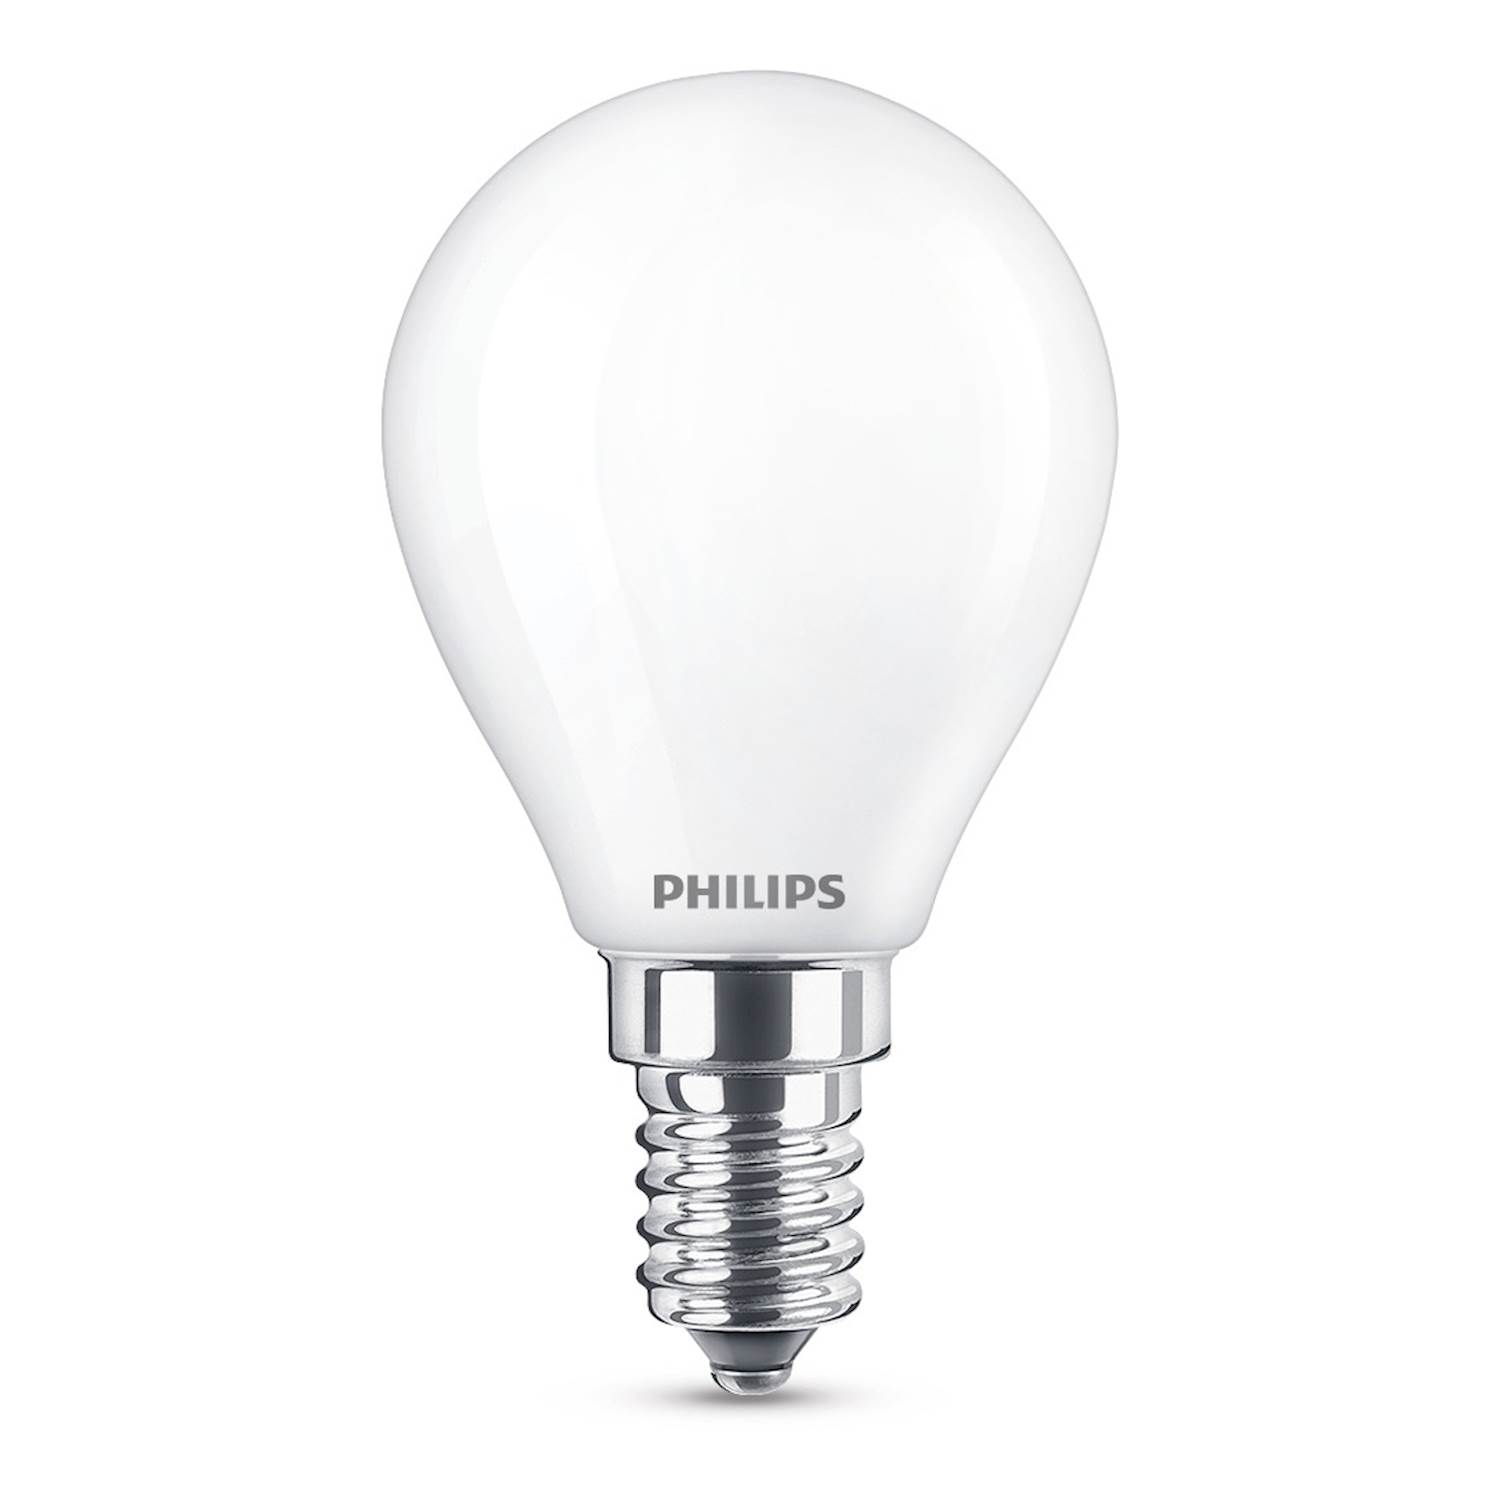 Philips LEDCL KLOT 4,3W E14 VV FR ND